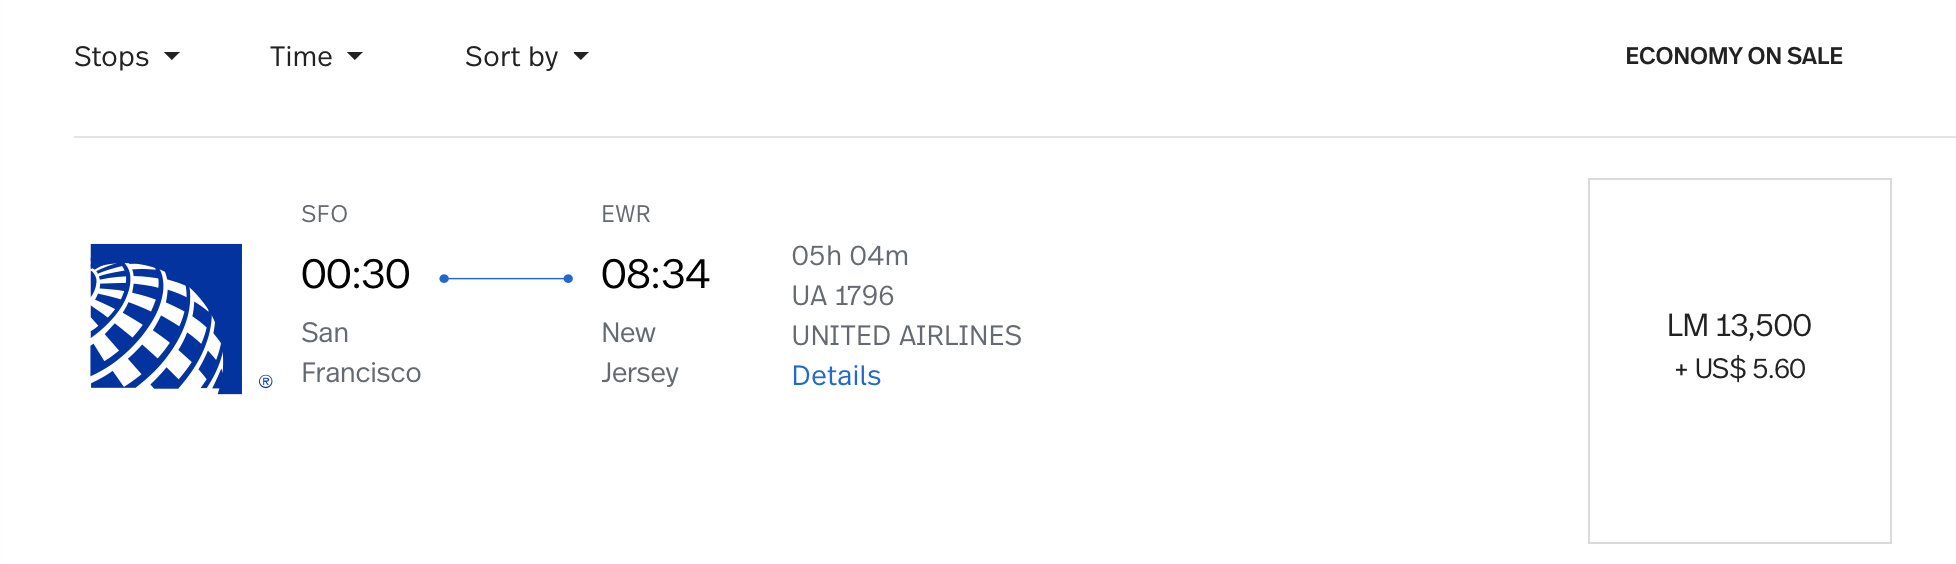 SFO to EWR LifeMiles Pricing on United Airlines